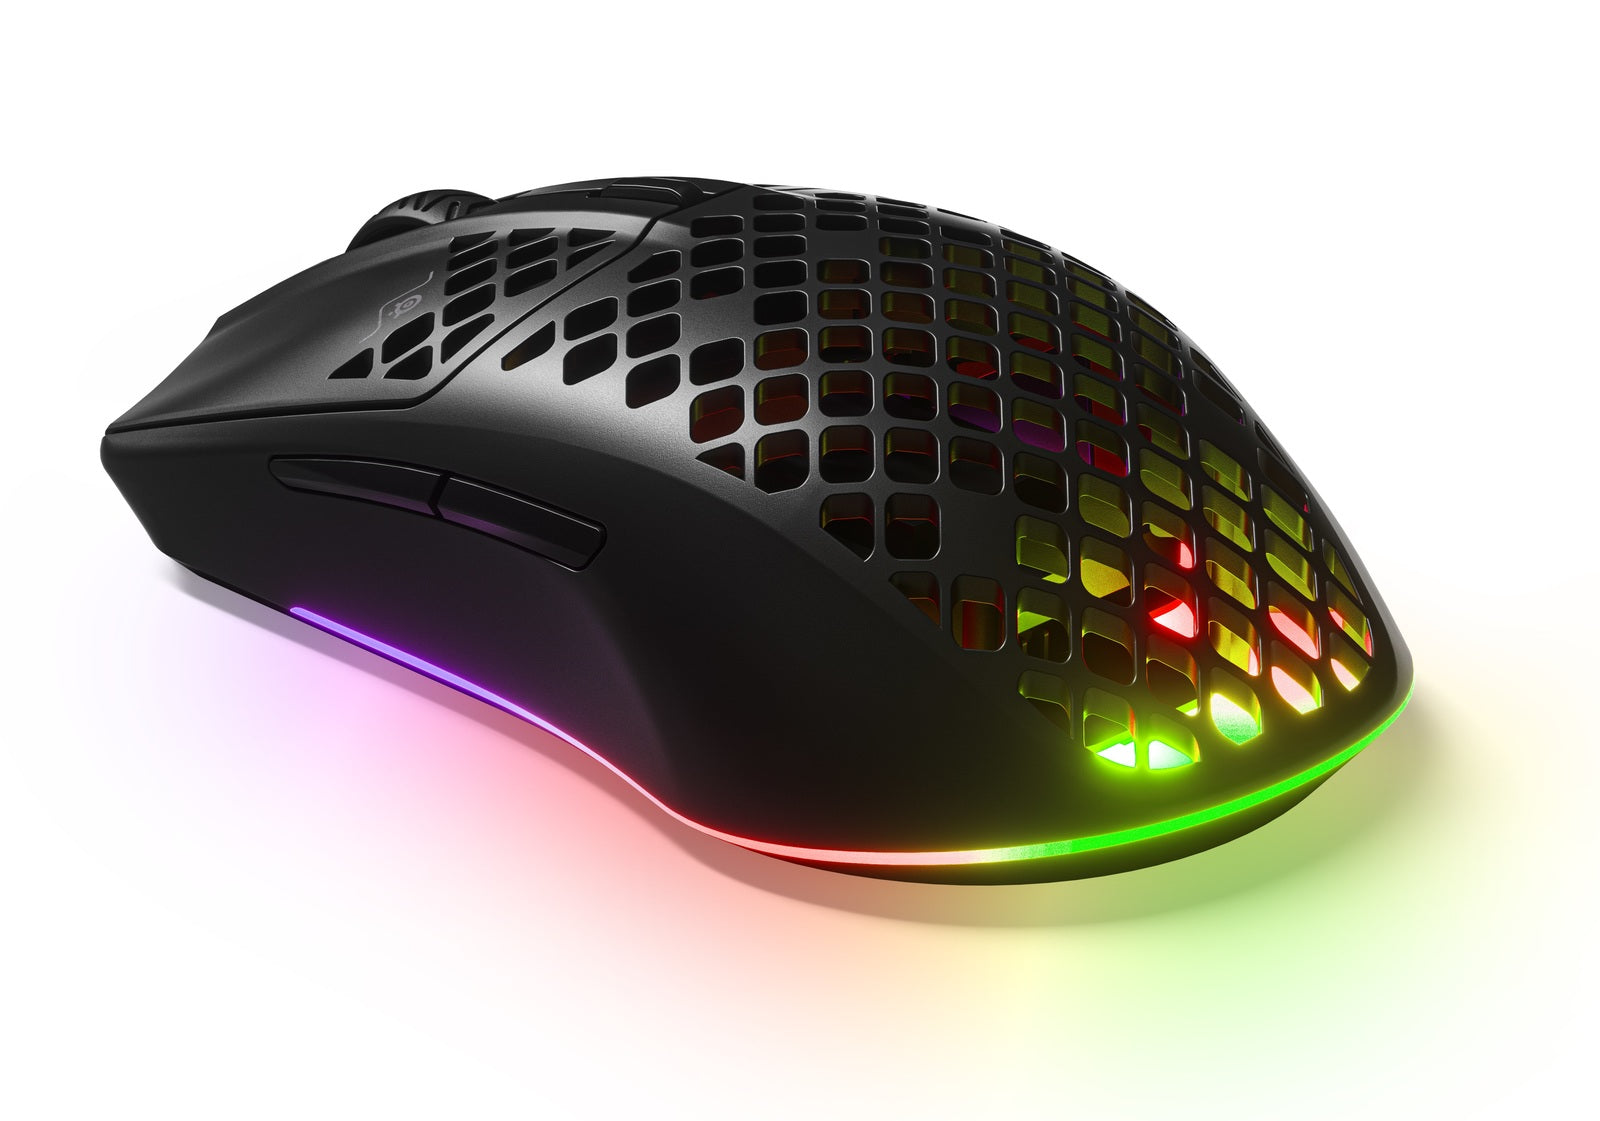 Steelseries Aerox 3 Wireless Gaming Mouse - PC Games